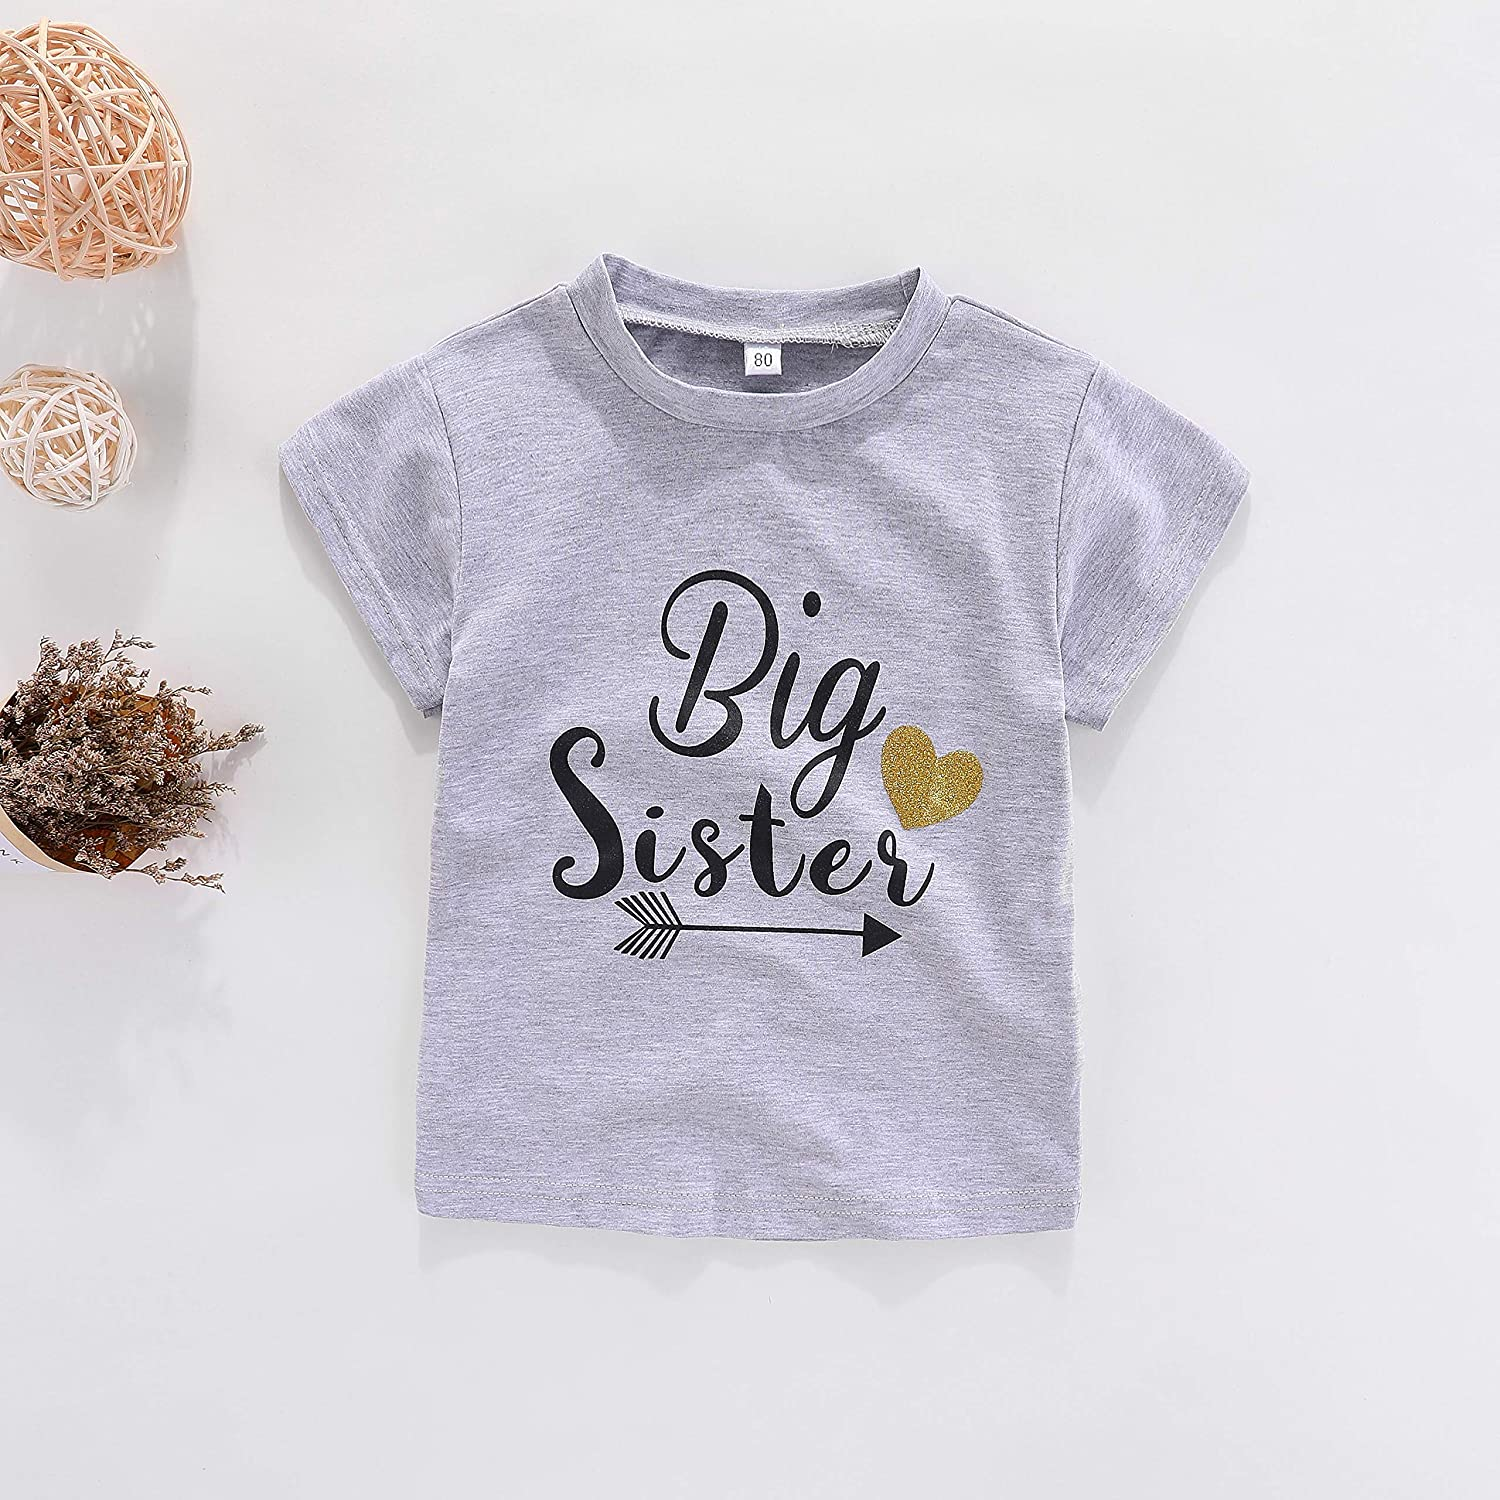 775b097b6d45d Amazon.com: WINZIK Little Baby Girls Kids Toddlers Outfits Big Sister Print  T-Shirt Pullover Tee Tops Clothes Costume Gift: Clothing